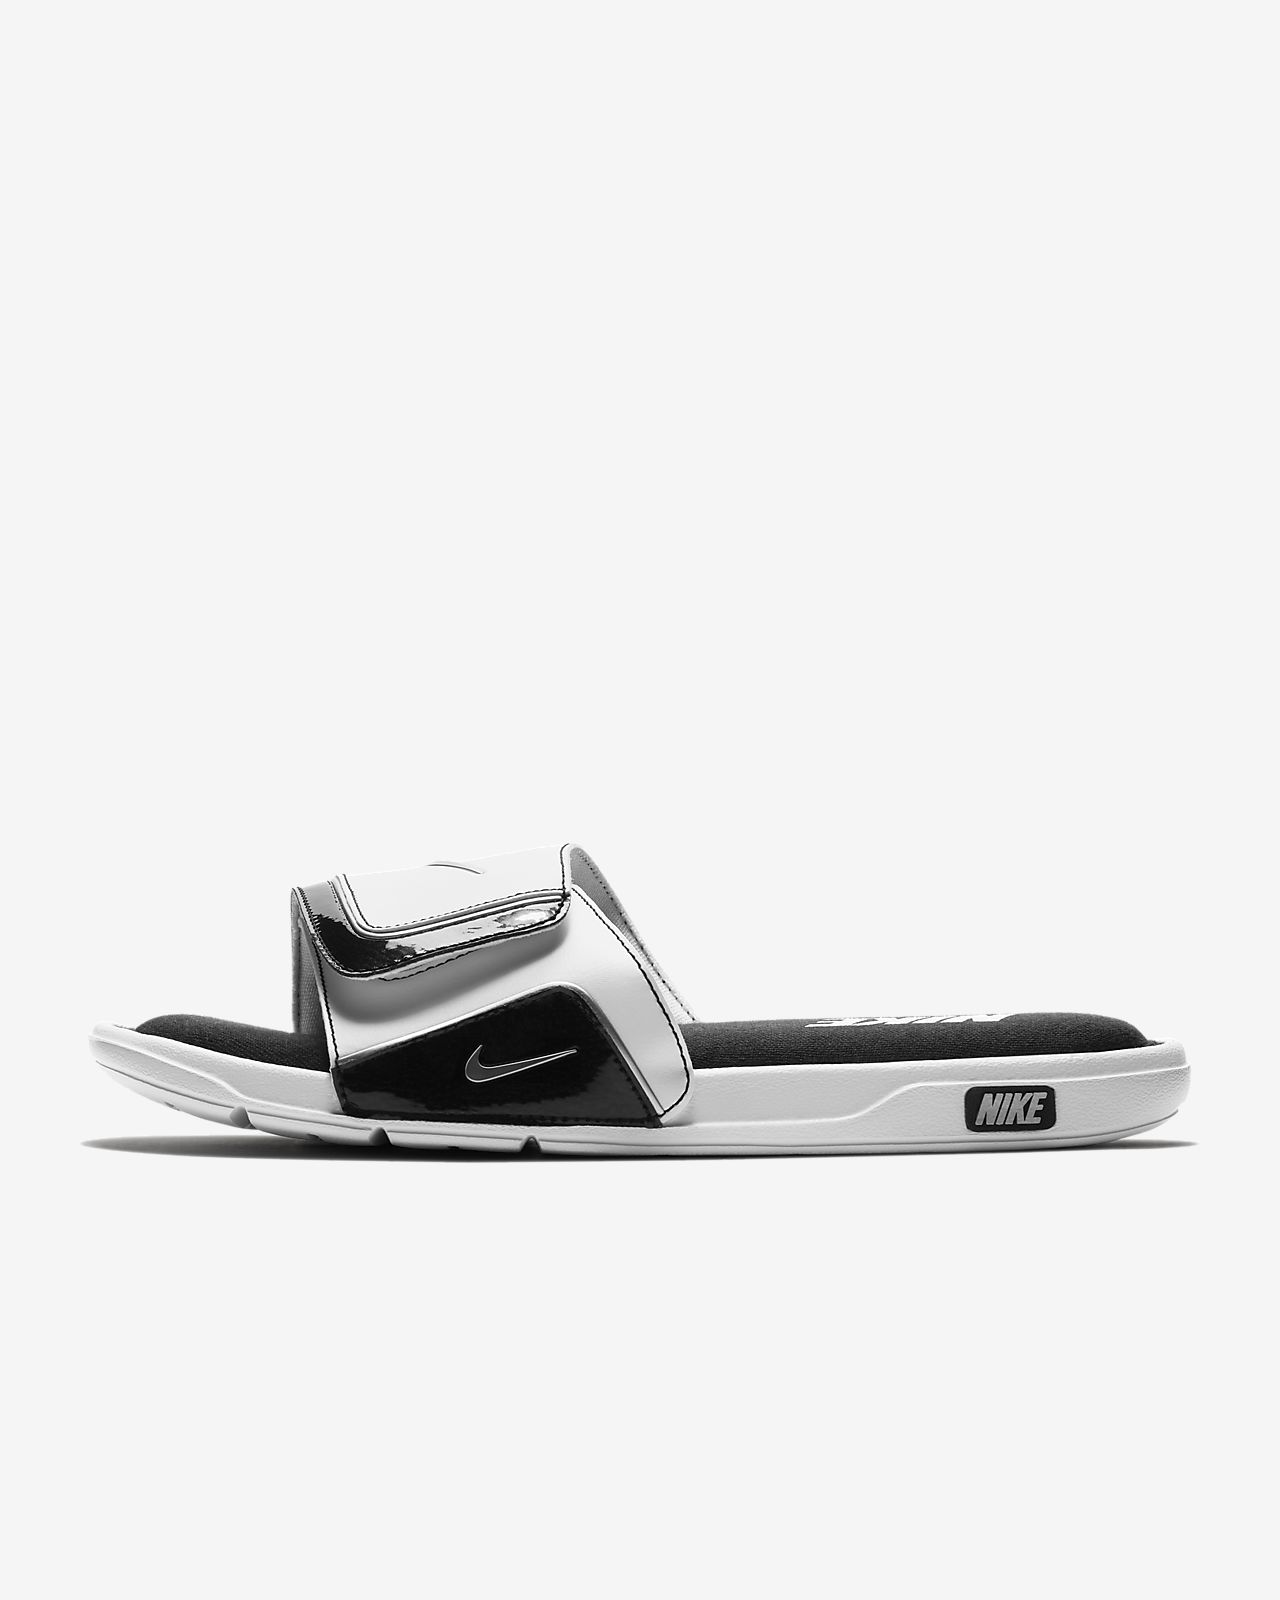 white silverwhite comfort womens sandals comforter nike trainer shoes silver mens blackmetallic black p lrg metallic s slide men